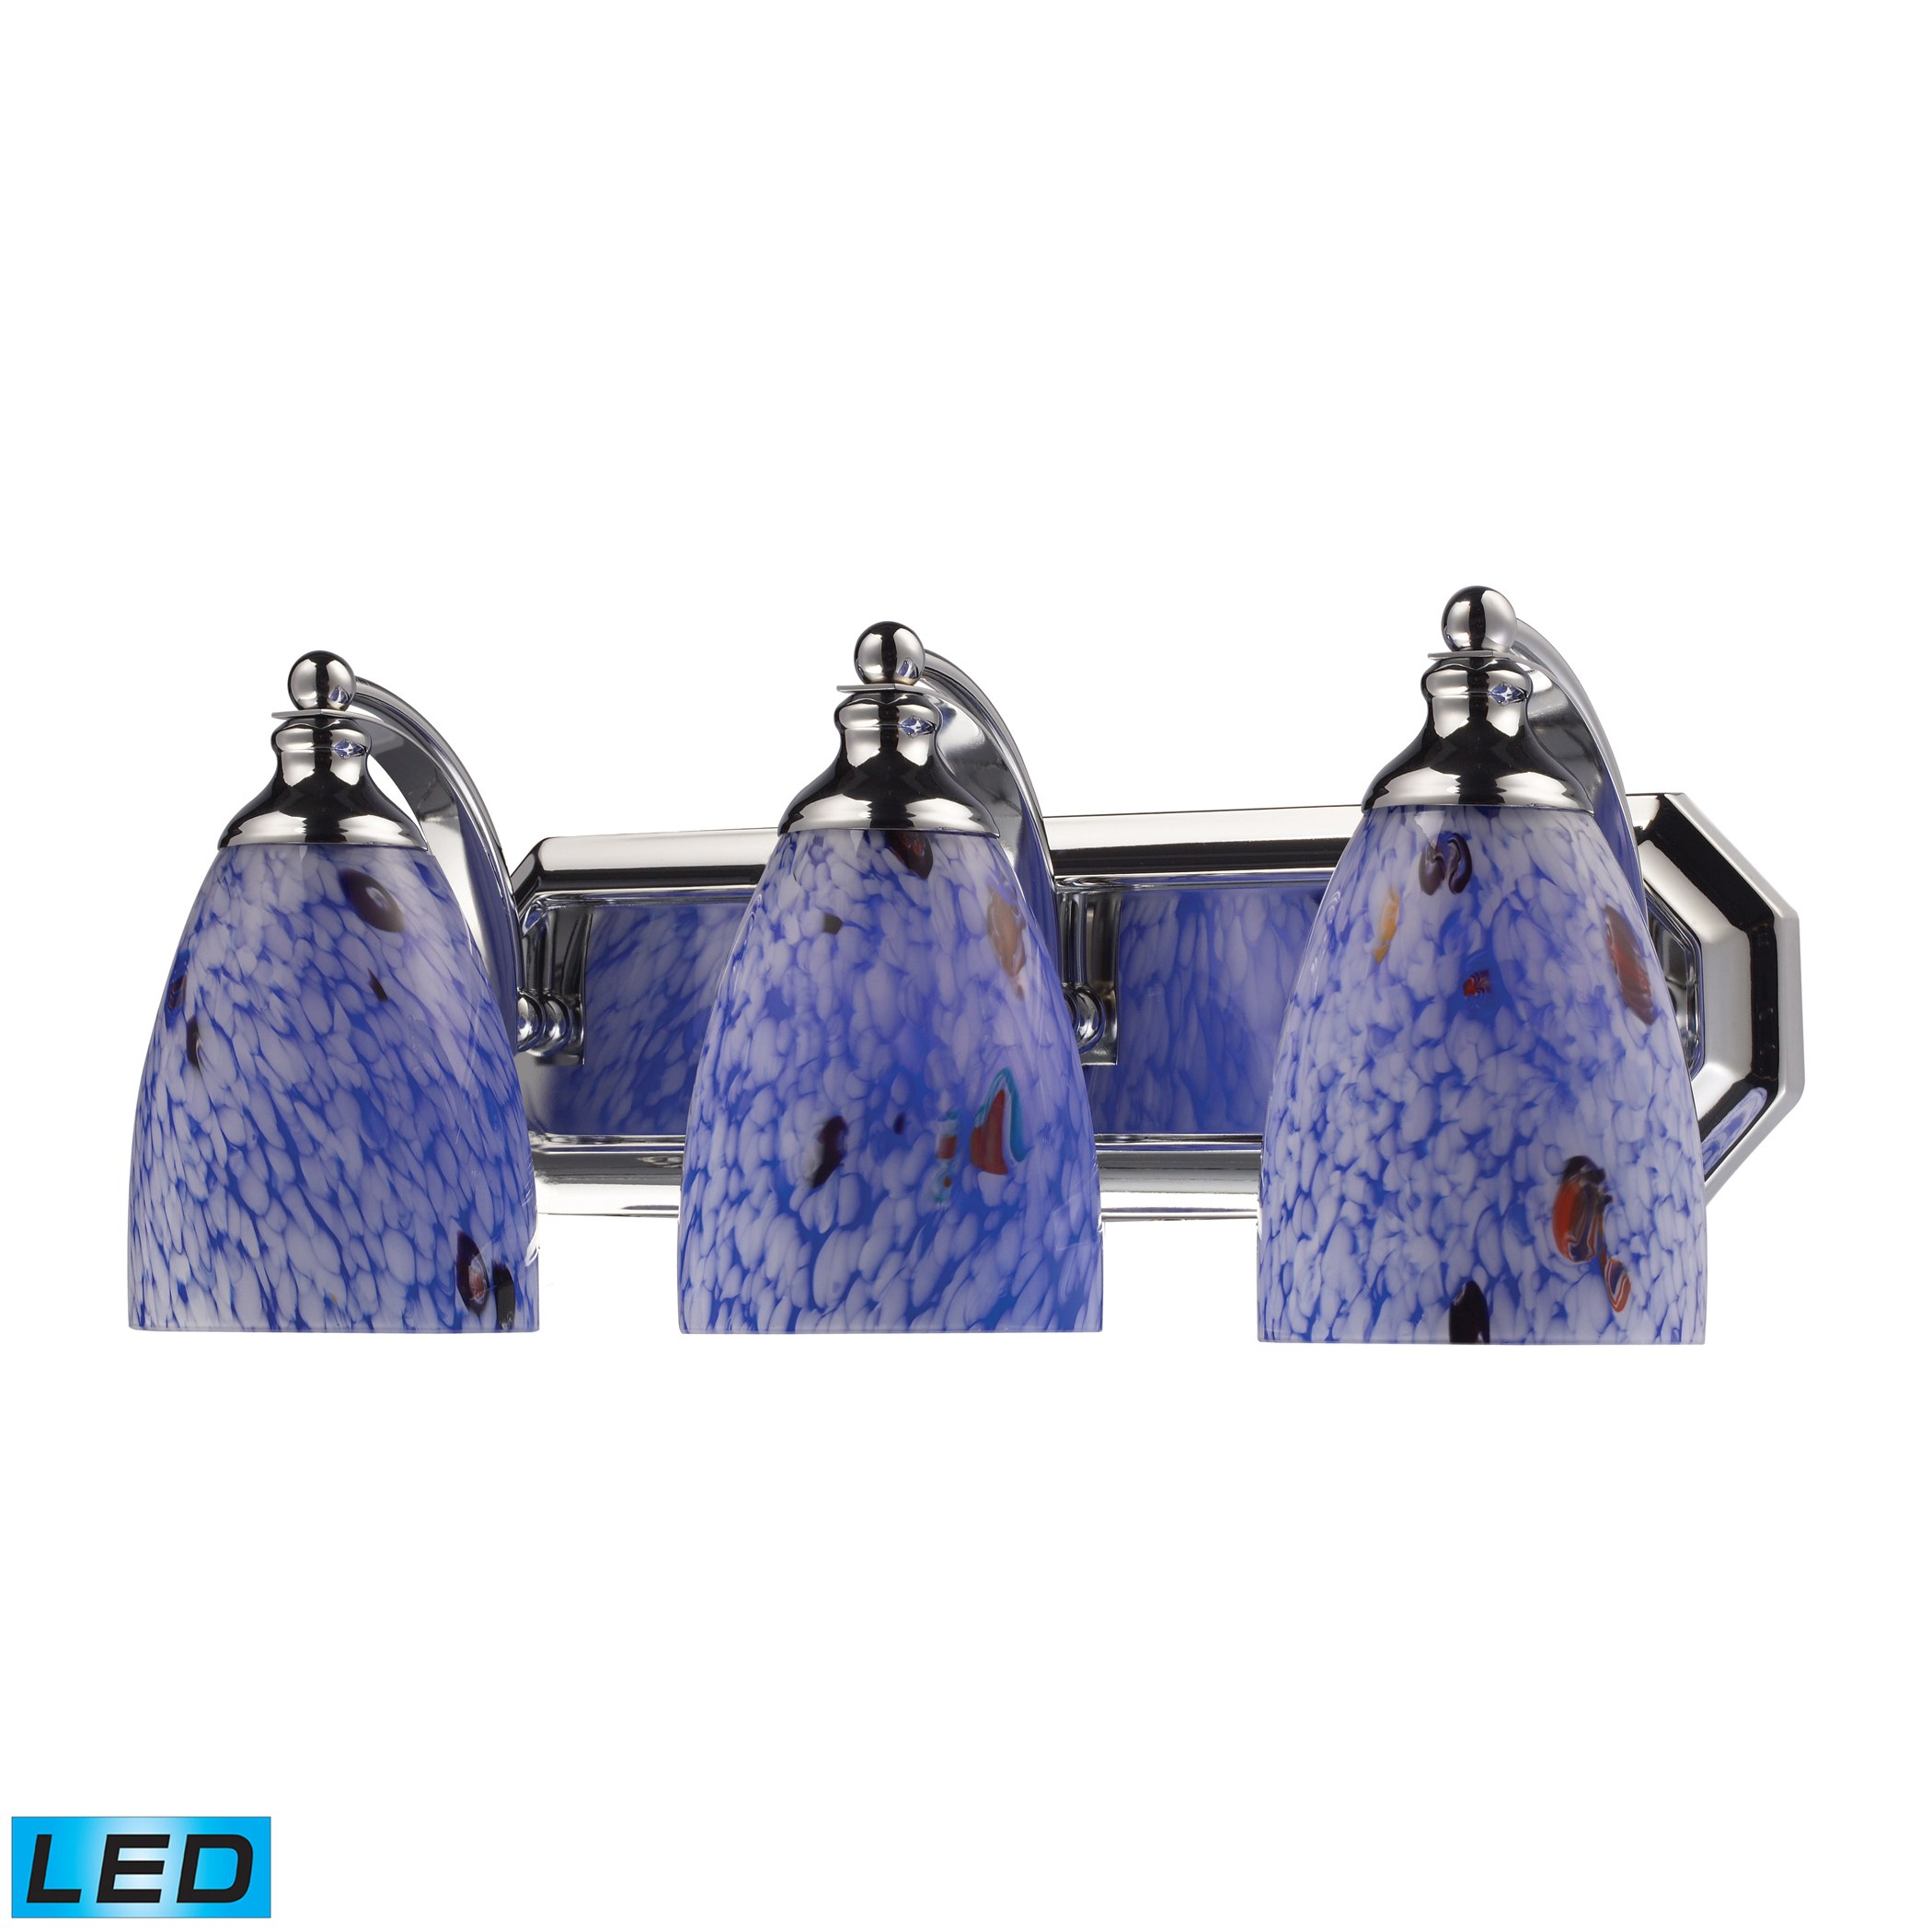 Blue Glass Vanity Light : 3 Light Vanity In Polished Chrome And Starburst Blue Glass by Elk Lighting